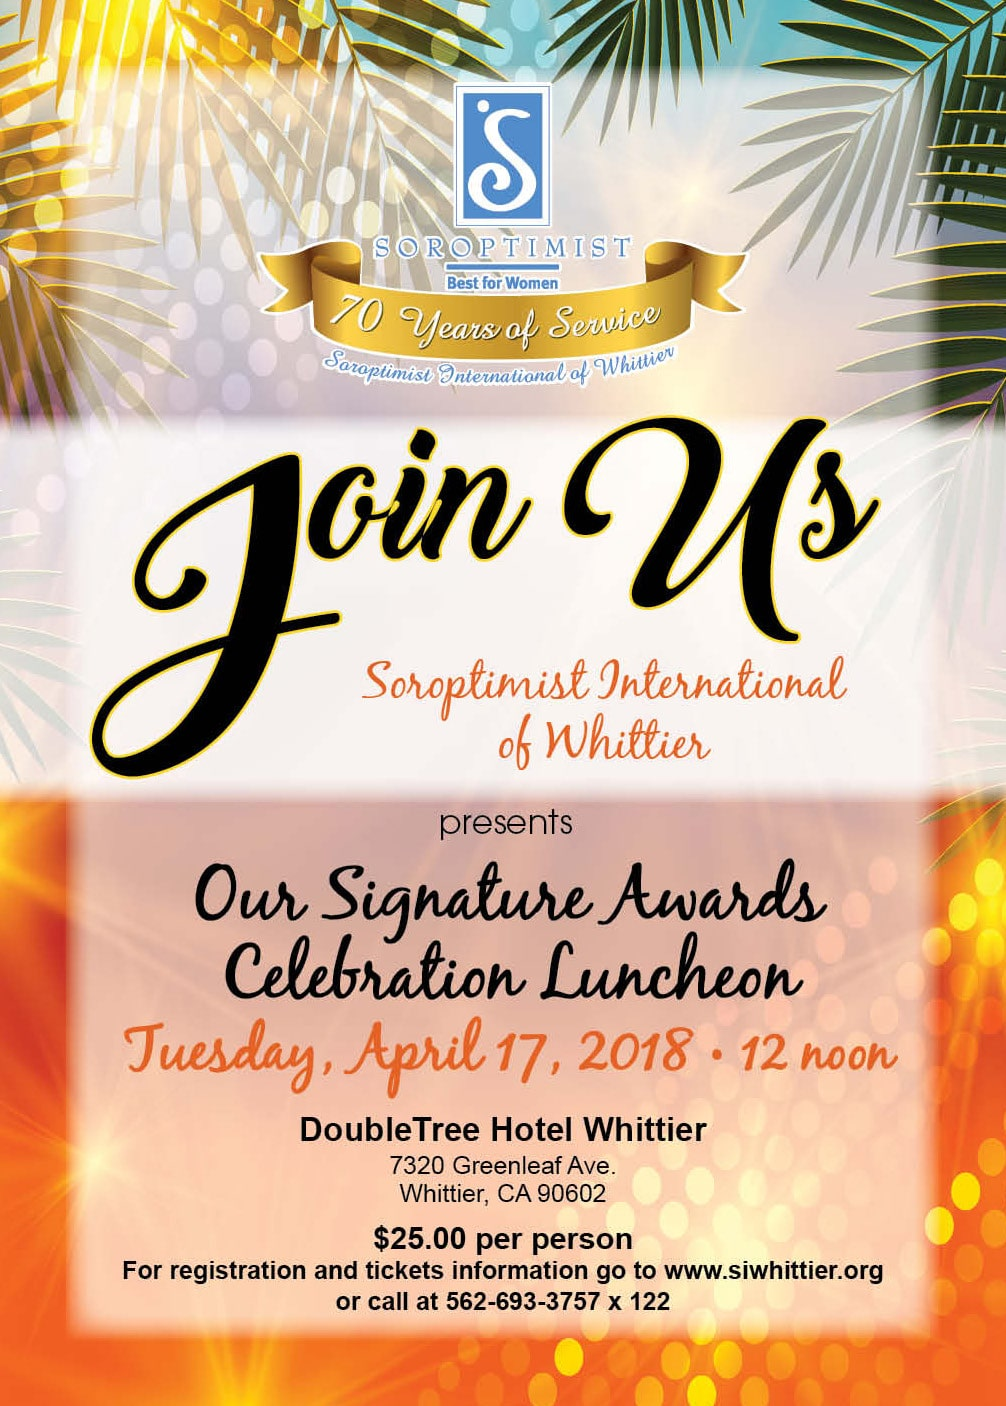 180417 siw signature award celebration luncheon invite whittier